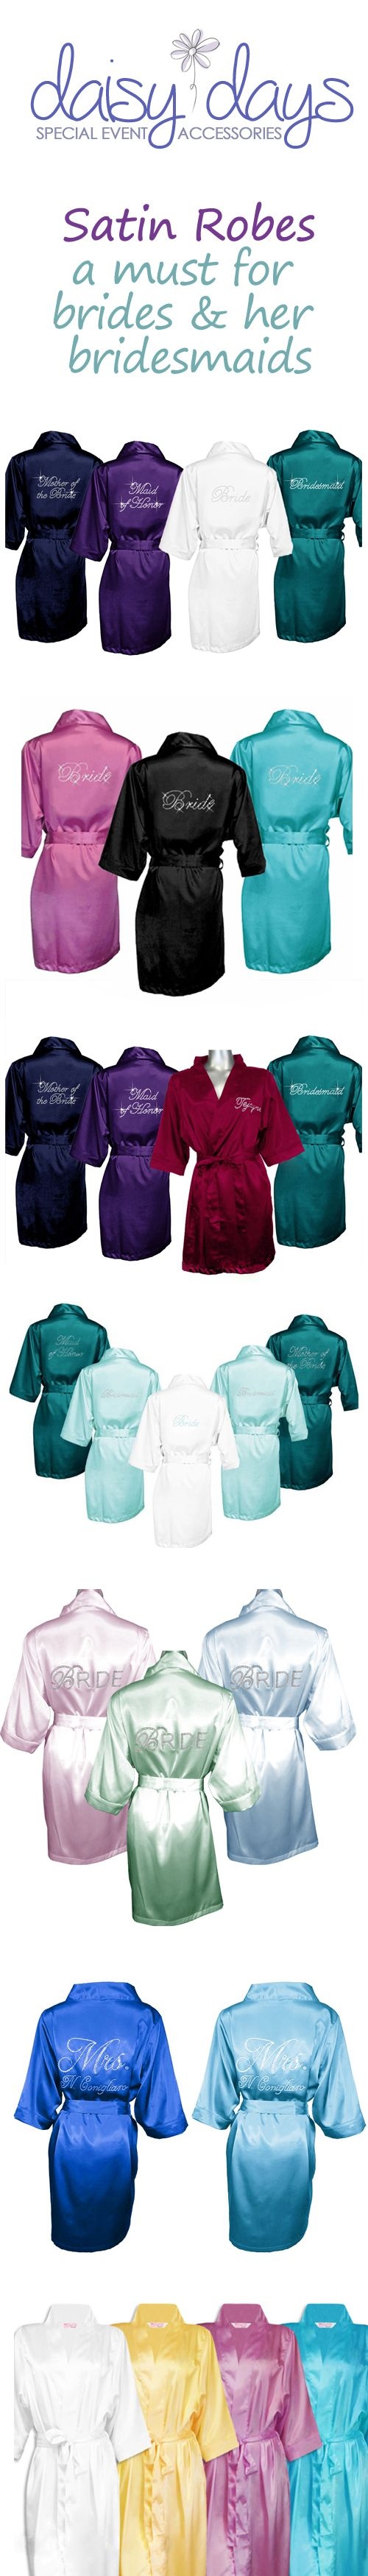 Wedding party satin robes are the perfect gift for the bride and her bridesmaids. Wear them as you get ready for the wedding and every day after! So many colors and styles!